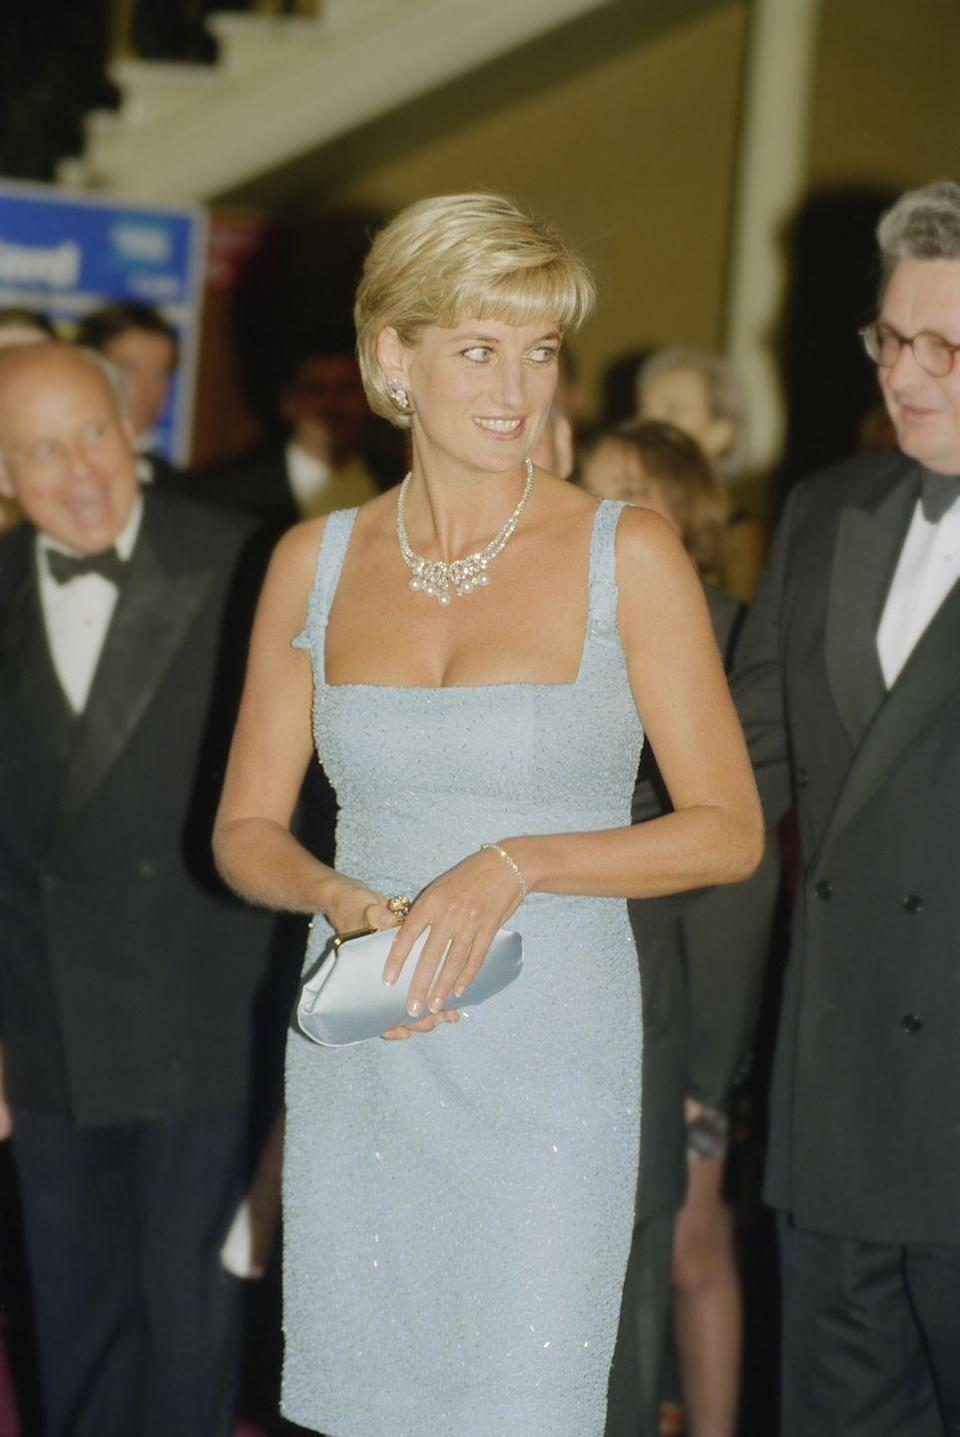 """<p>The late Princess Diana was the queen of clutches—she <a href=""""https://www.cosmopolitan.com/style-beauty/fashion/g19643527/royal-family-fashion-rules/"""" rel=""""nofollow noopener"""" target=""""_blank"""" data-ylk=""""slk:even used them for a secret trick!"""" class=""""link rapid-noclick-resp"""">even used them for a secret trick!</a> But chic satin ones, like this powder-blue bag, were definitely her fave.</p>"""